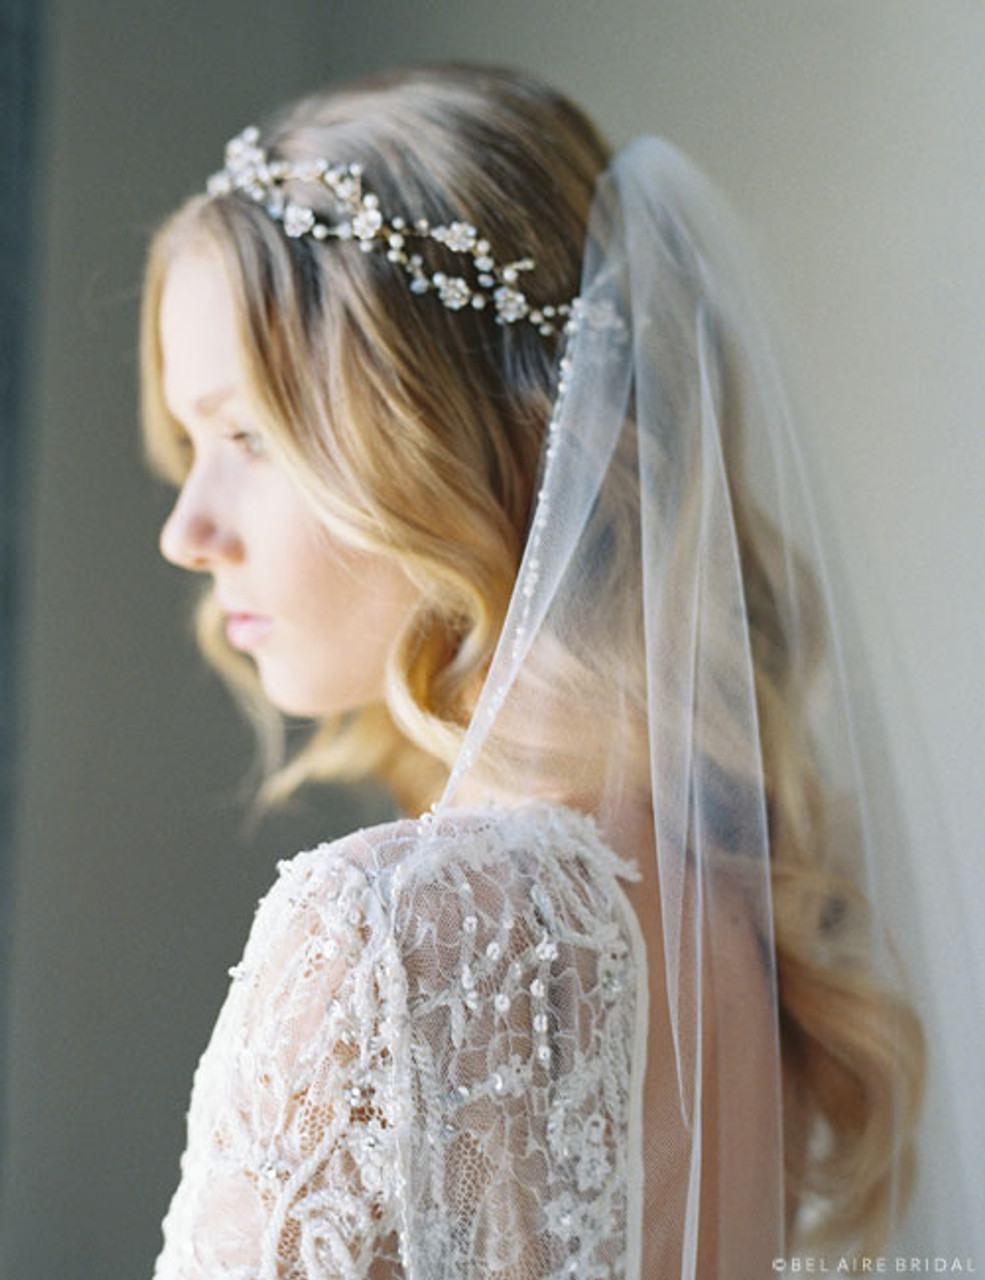 Bel Aire Bridal 6730 - Weaving flower garland with delicate pearl accents